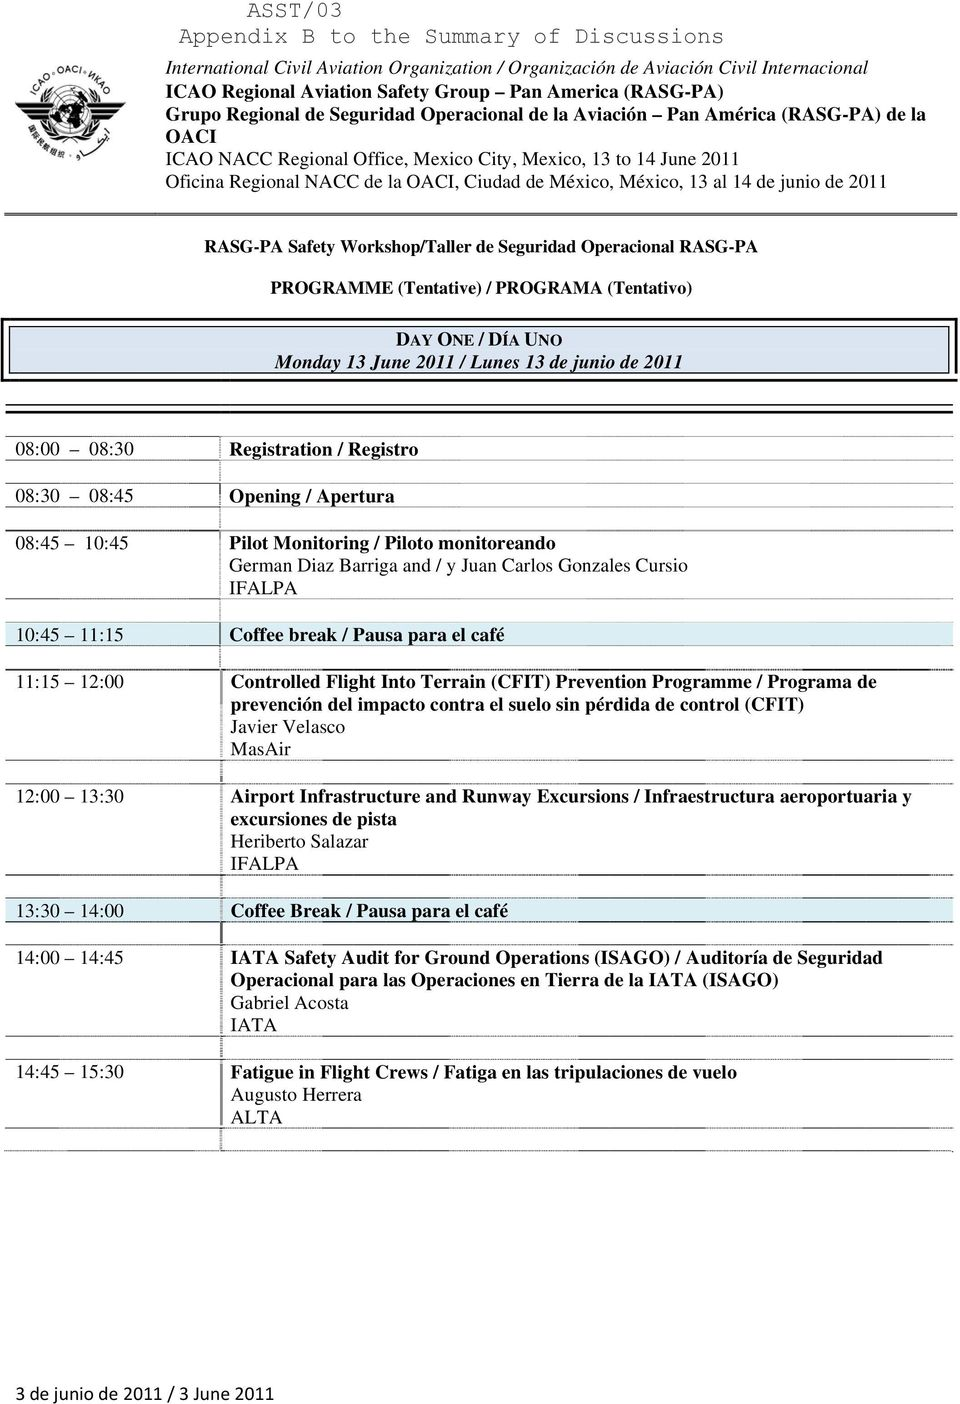 RASG-PA Safety Workshop/Taller de Seguridad Operacional RASG-PA PROGRAMME (Tentative) / PROGRAMA (Tentativo) DAY ONE / DÍA UNO Monday 13 June 2011 / Lunes 13 de junio de 2011 08:00 08:30 Registration